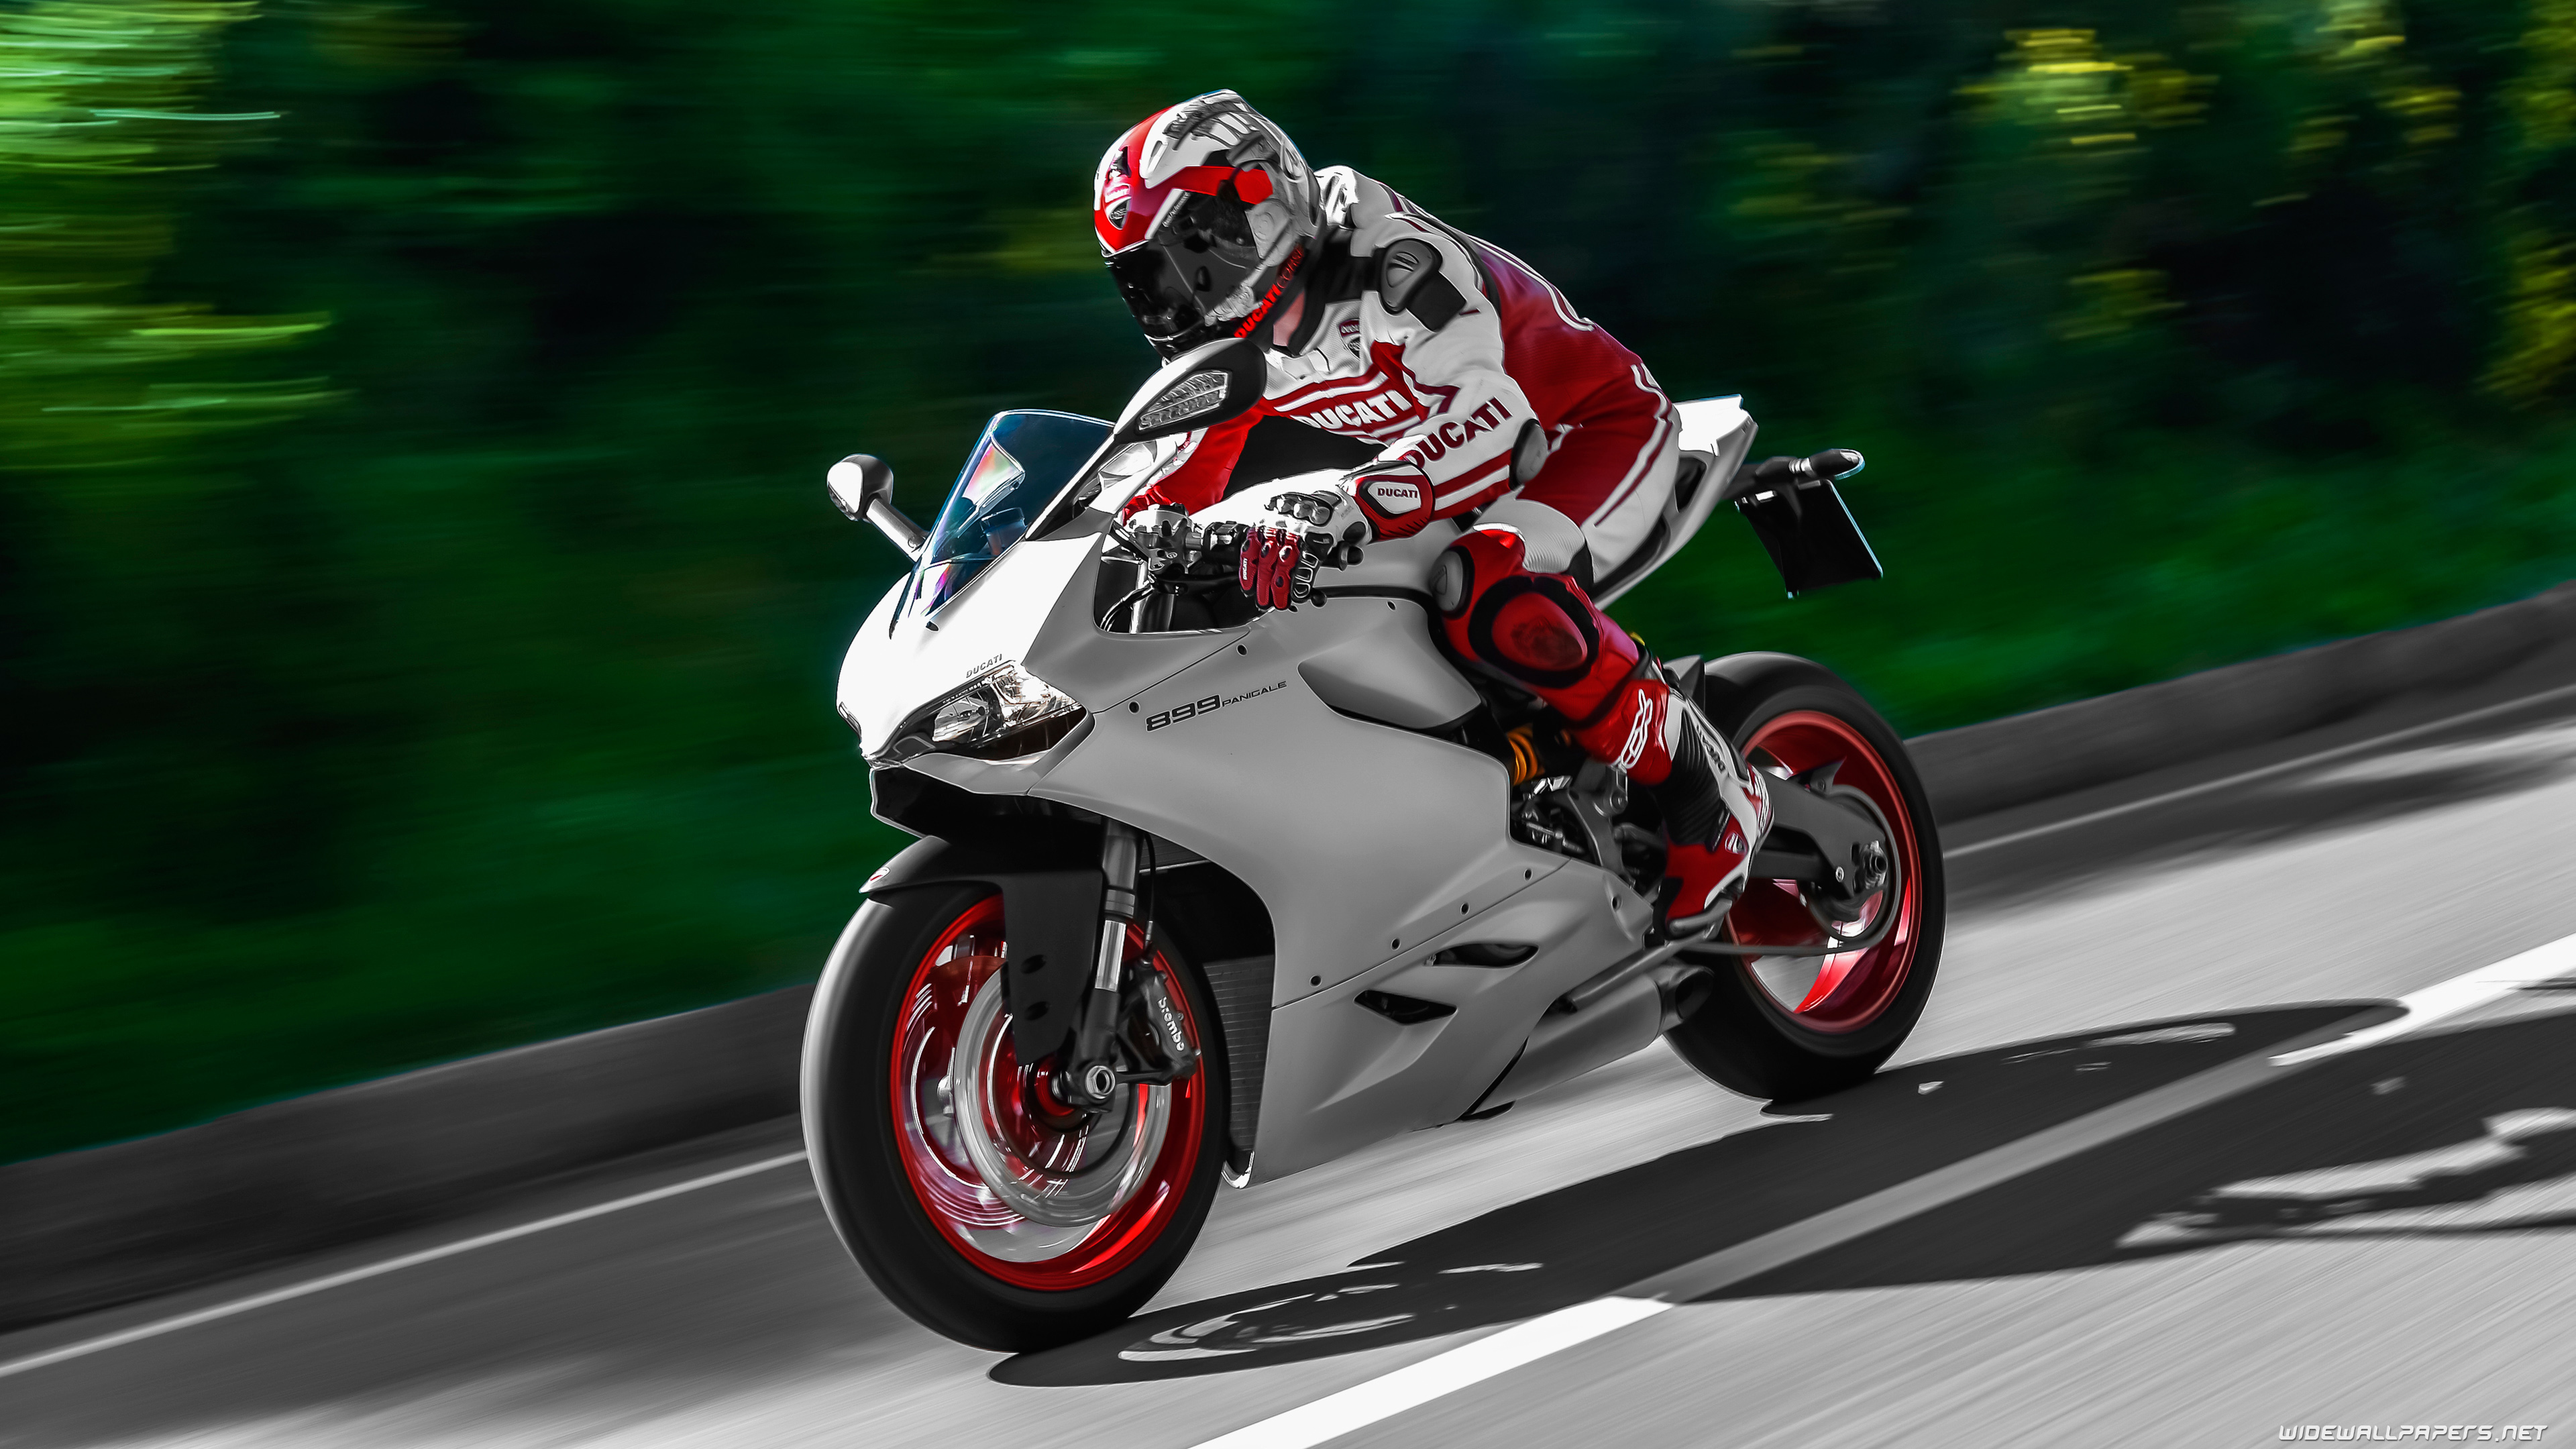 Ducati Motobike Wallpapers For Pc: Ducati Panigale Wallpapers